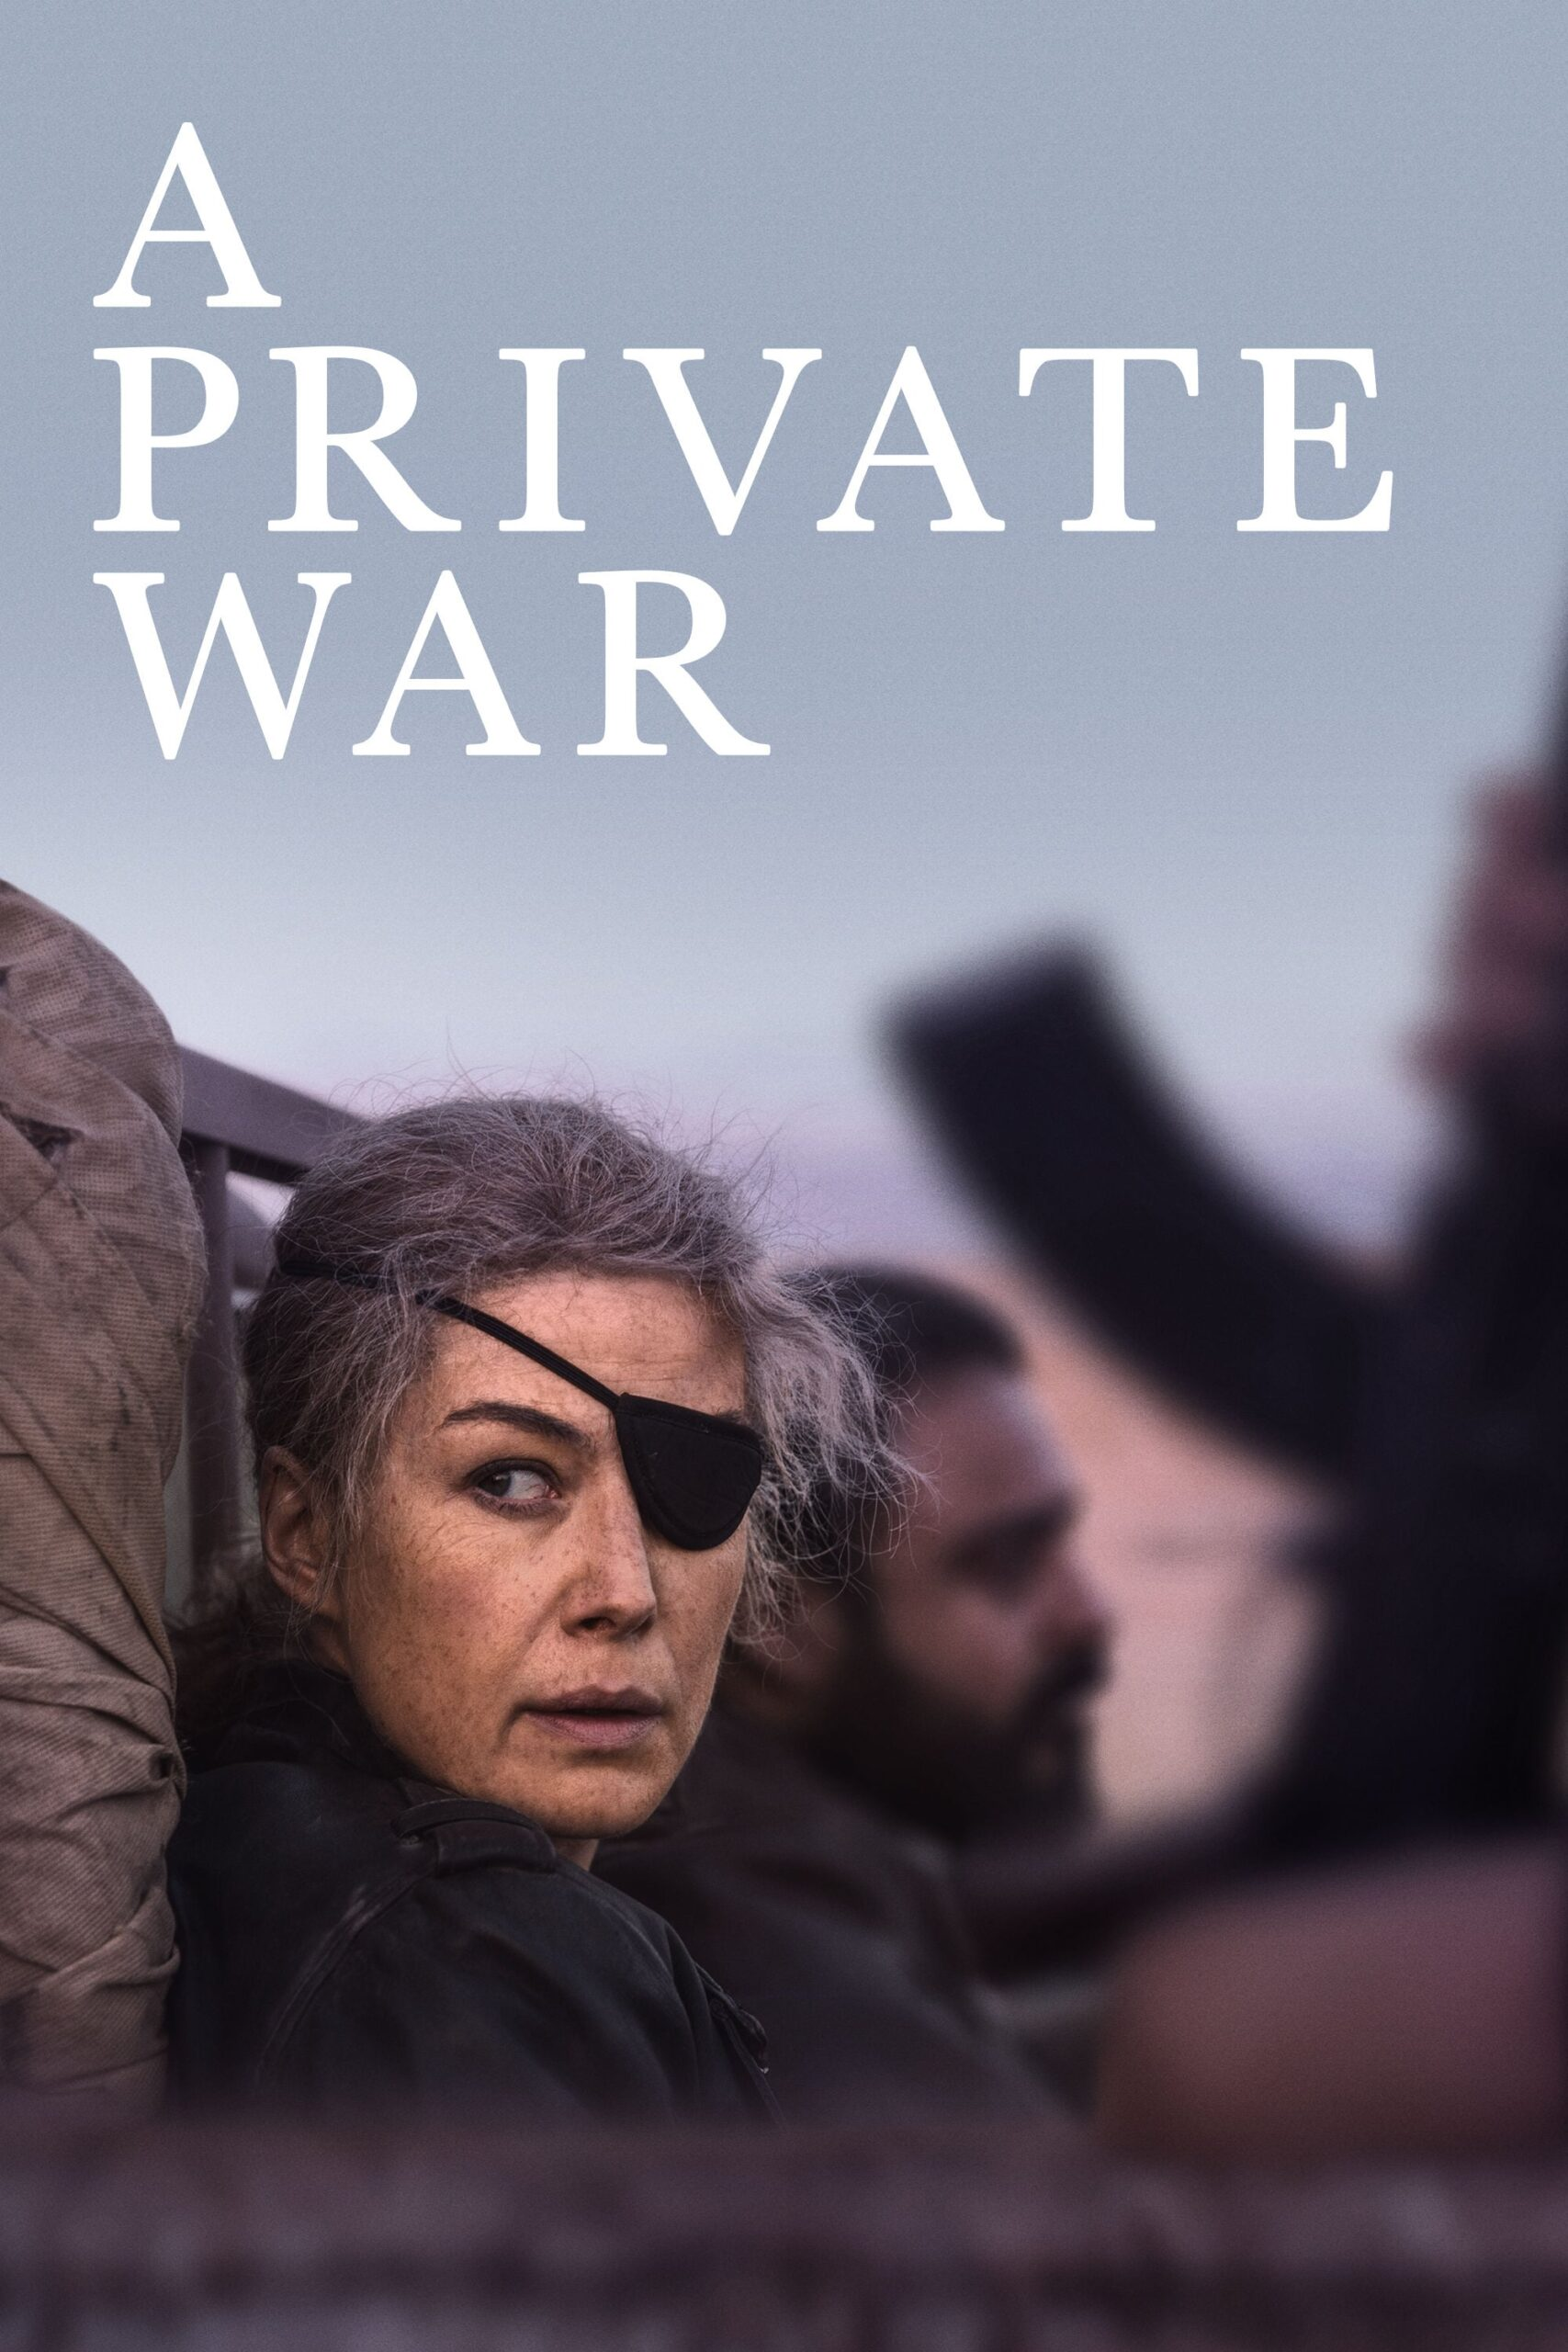 A Private War Movie Streaming Online Watch on Book My Show, Google Play, Youtube, iTunes